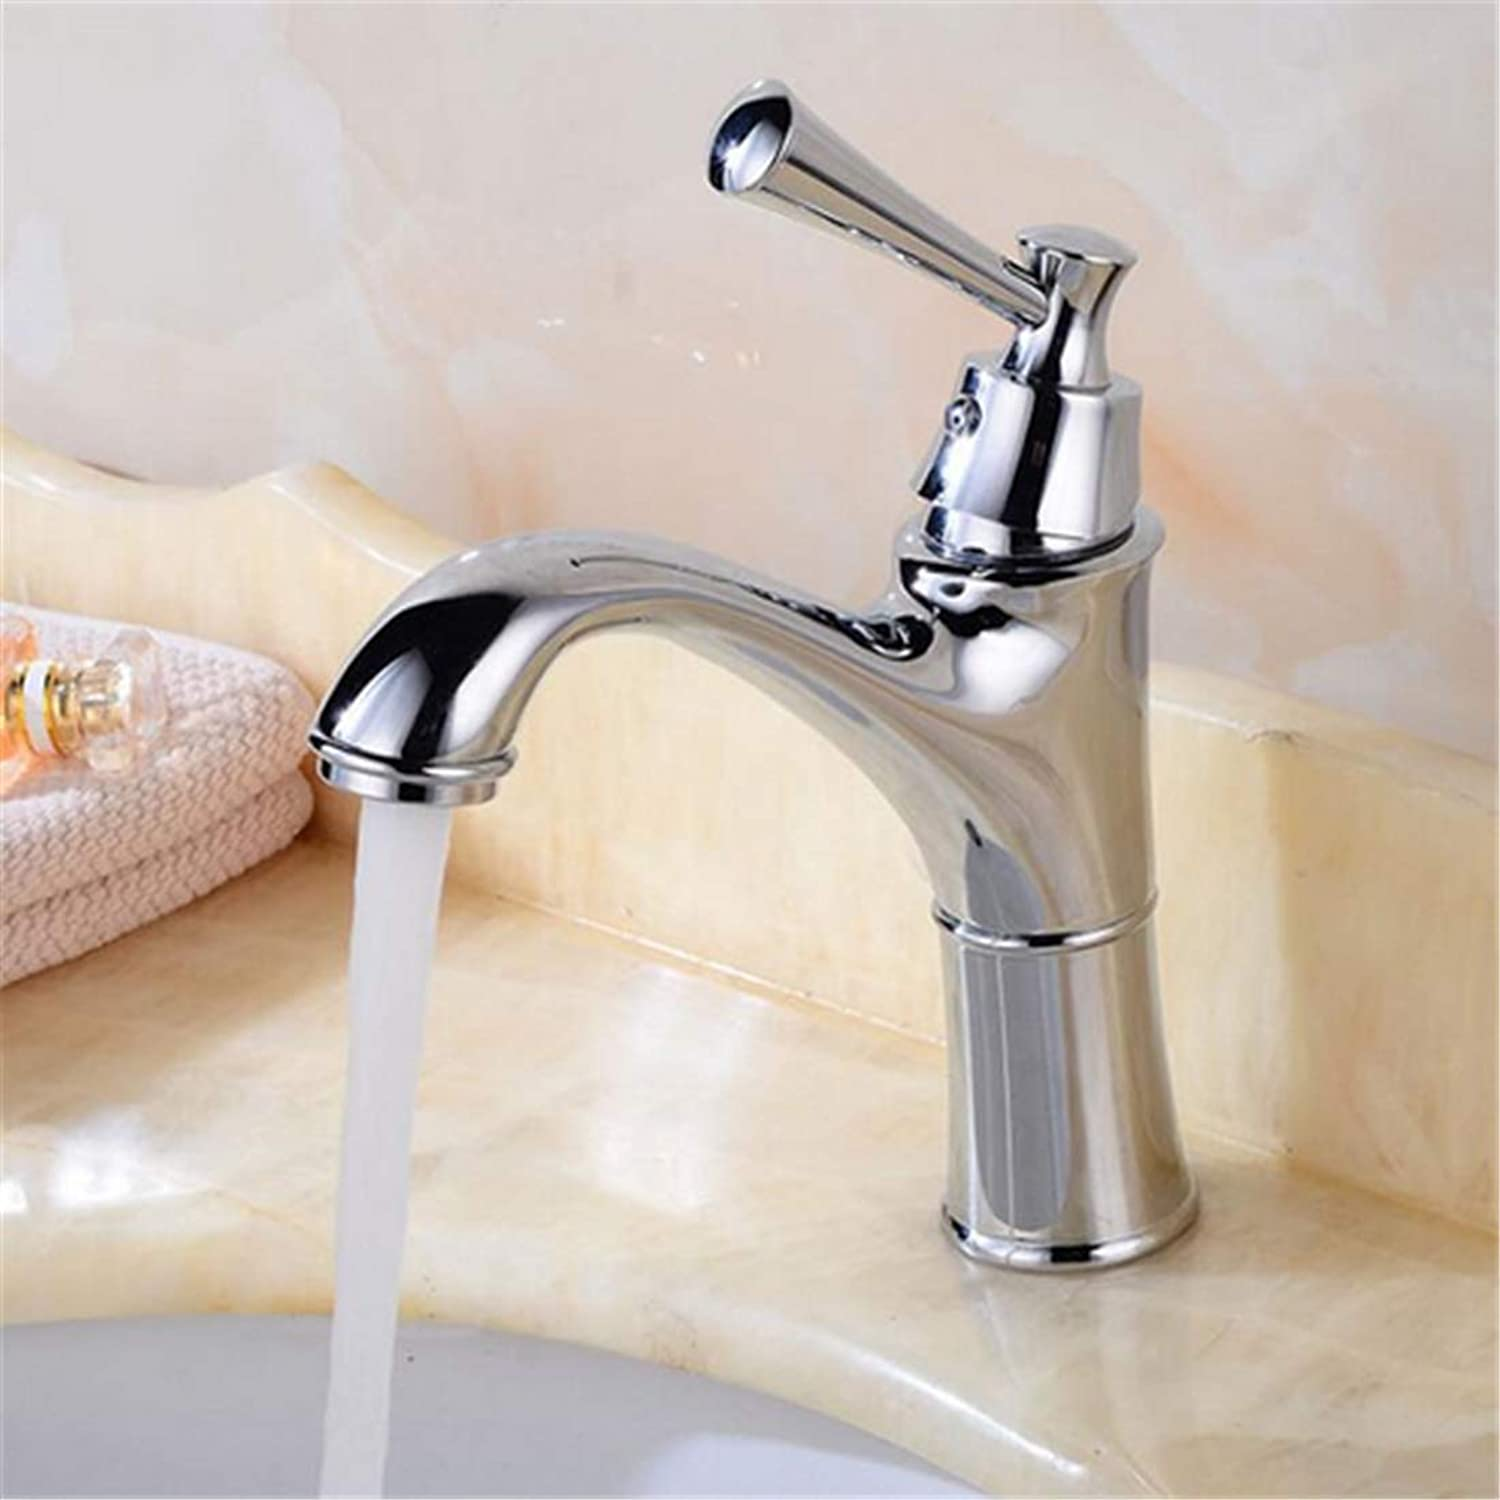 Retro Hot and Cold Faucet Retrowhole Brass Chrome Brass Basin Faucet Art Basin Bathroom Antique Water Tap